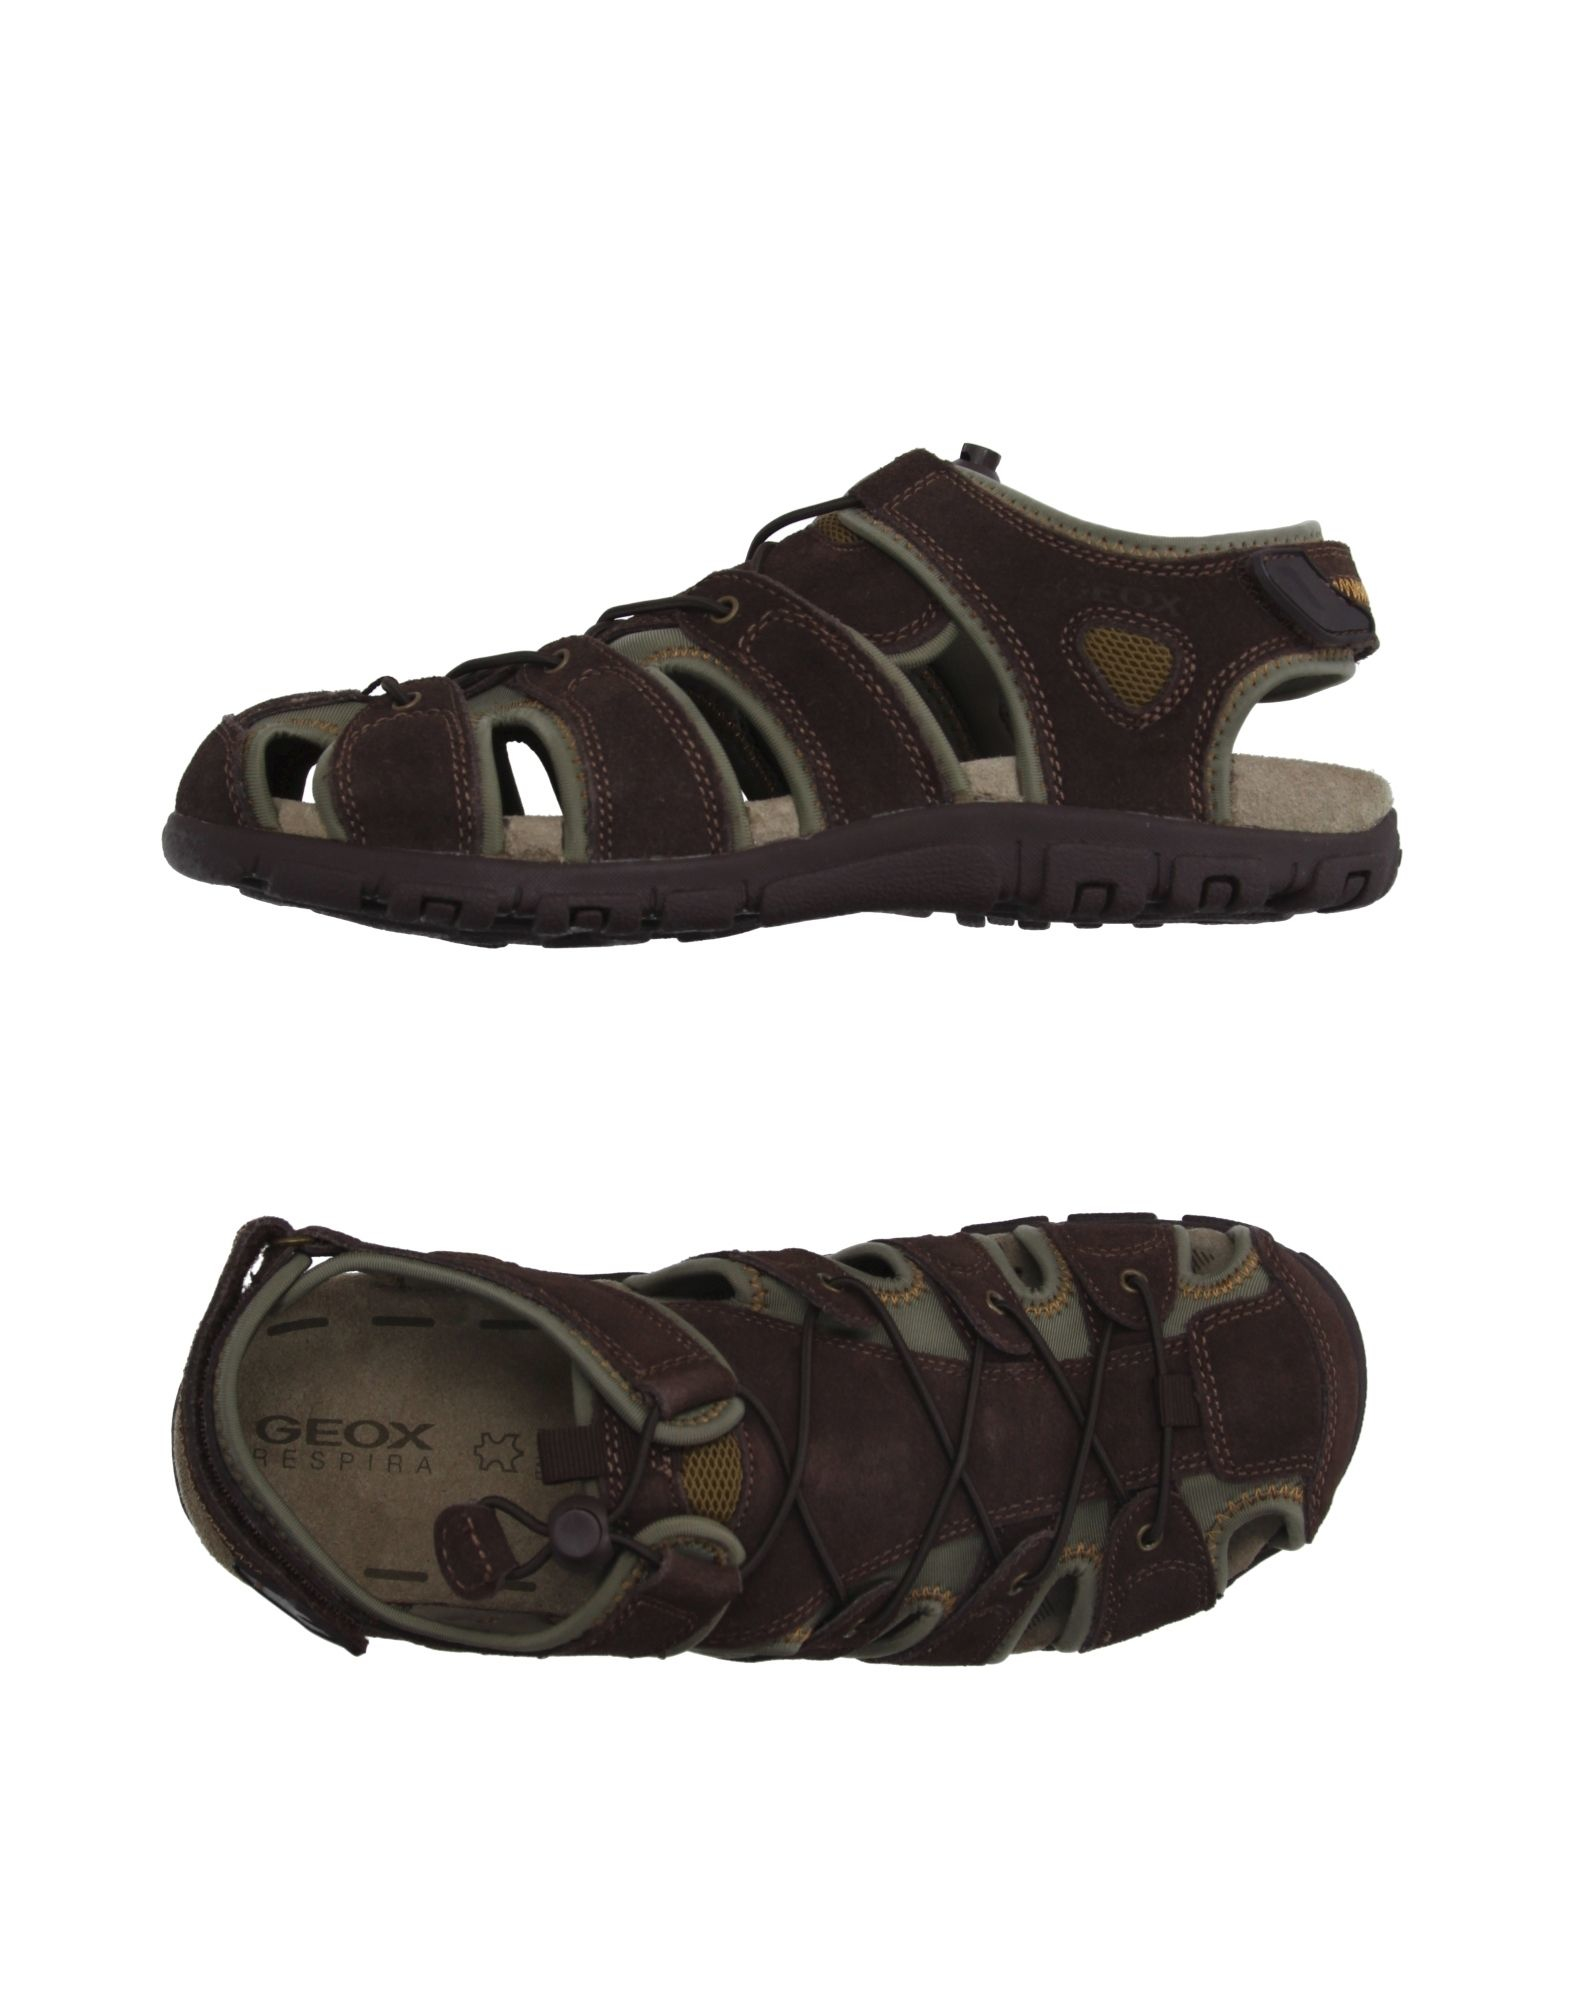 368cb4aba Geox Sandals in Brown for Men - Lyst